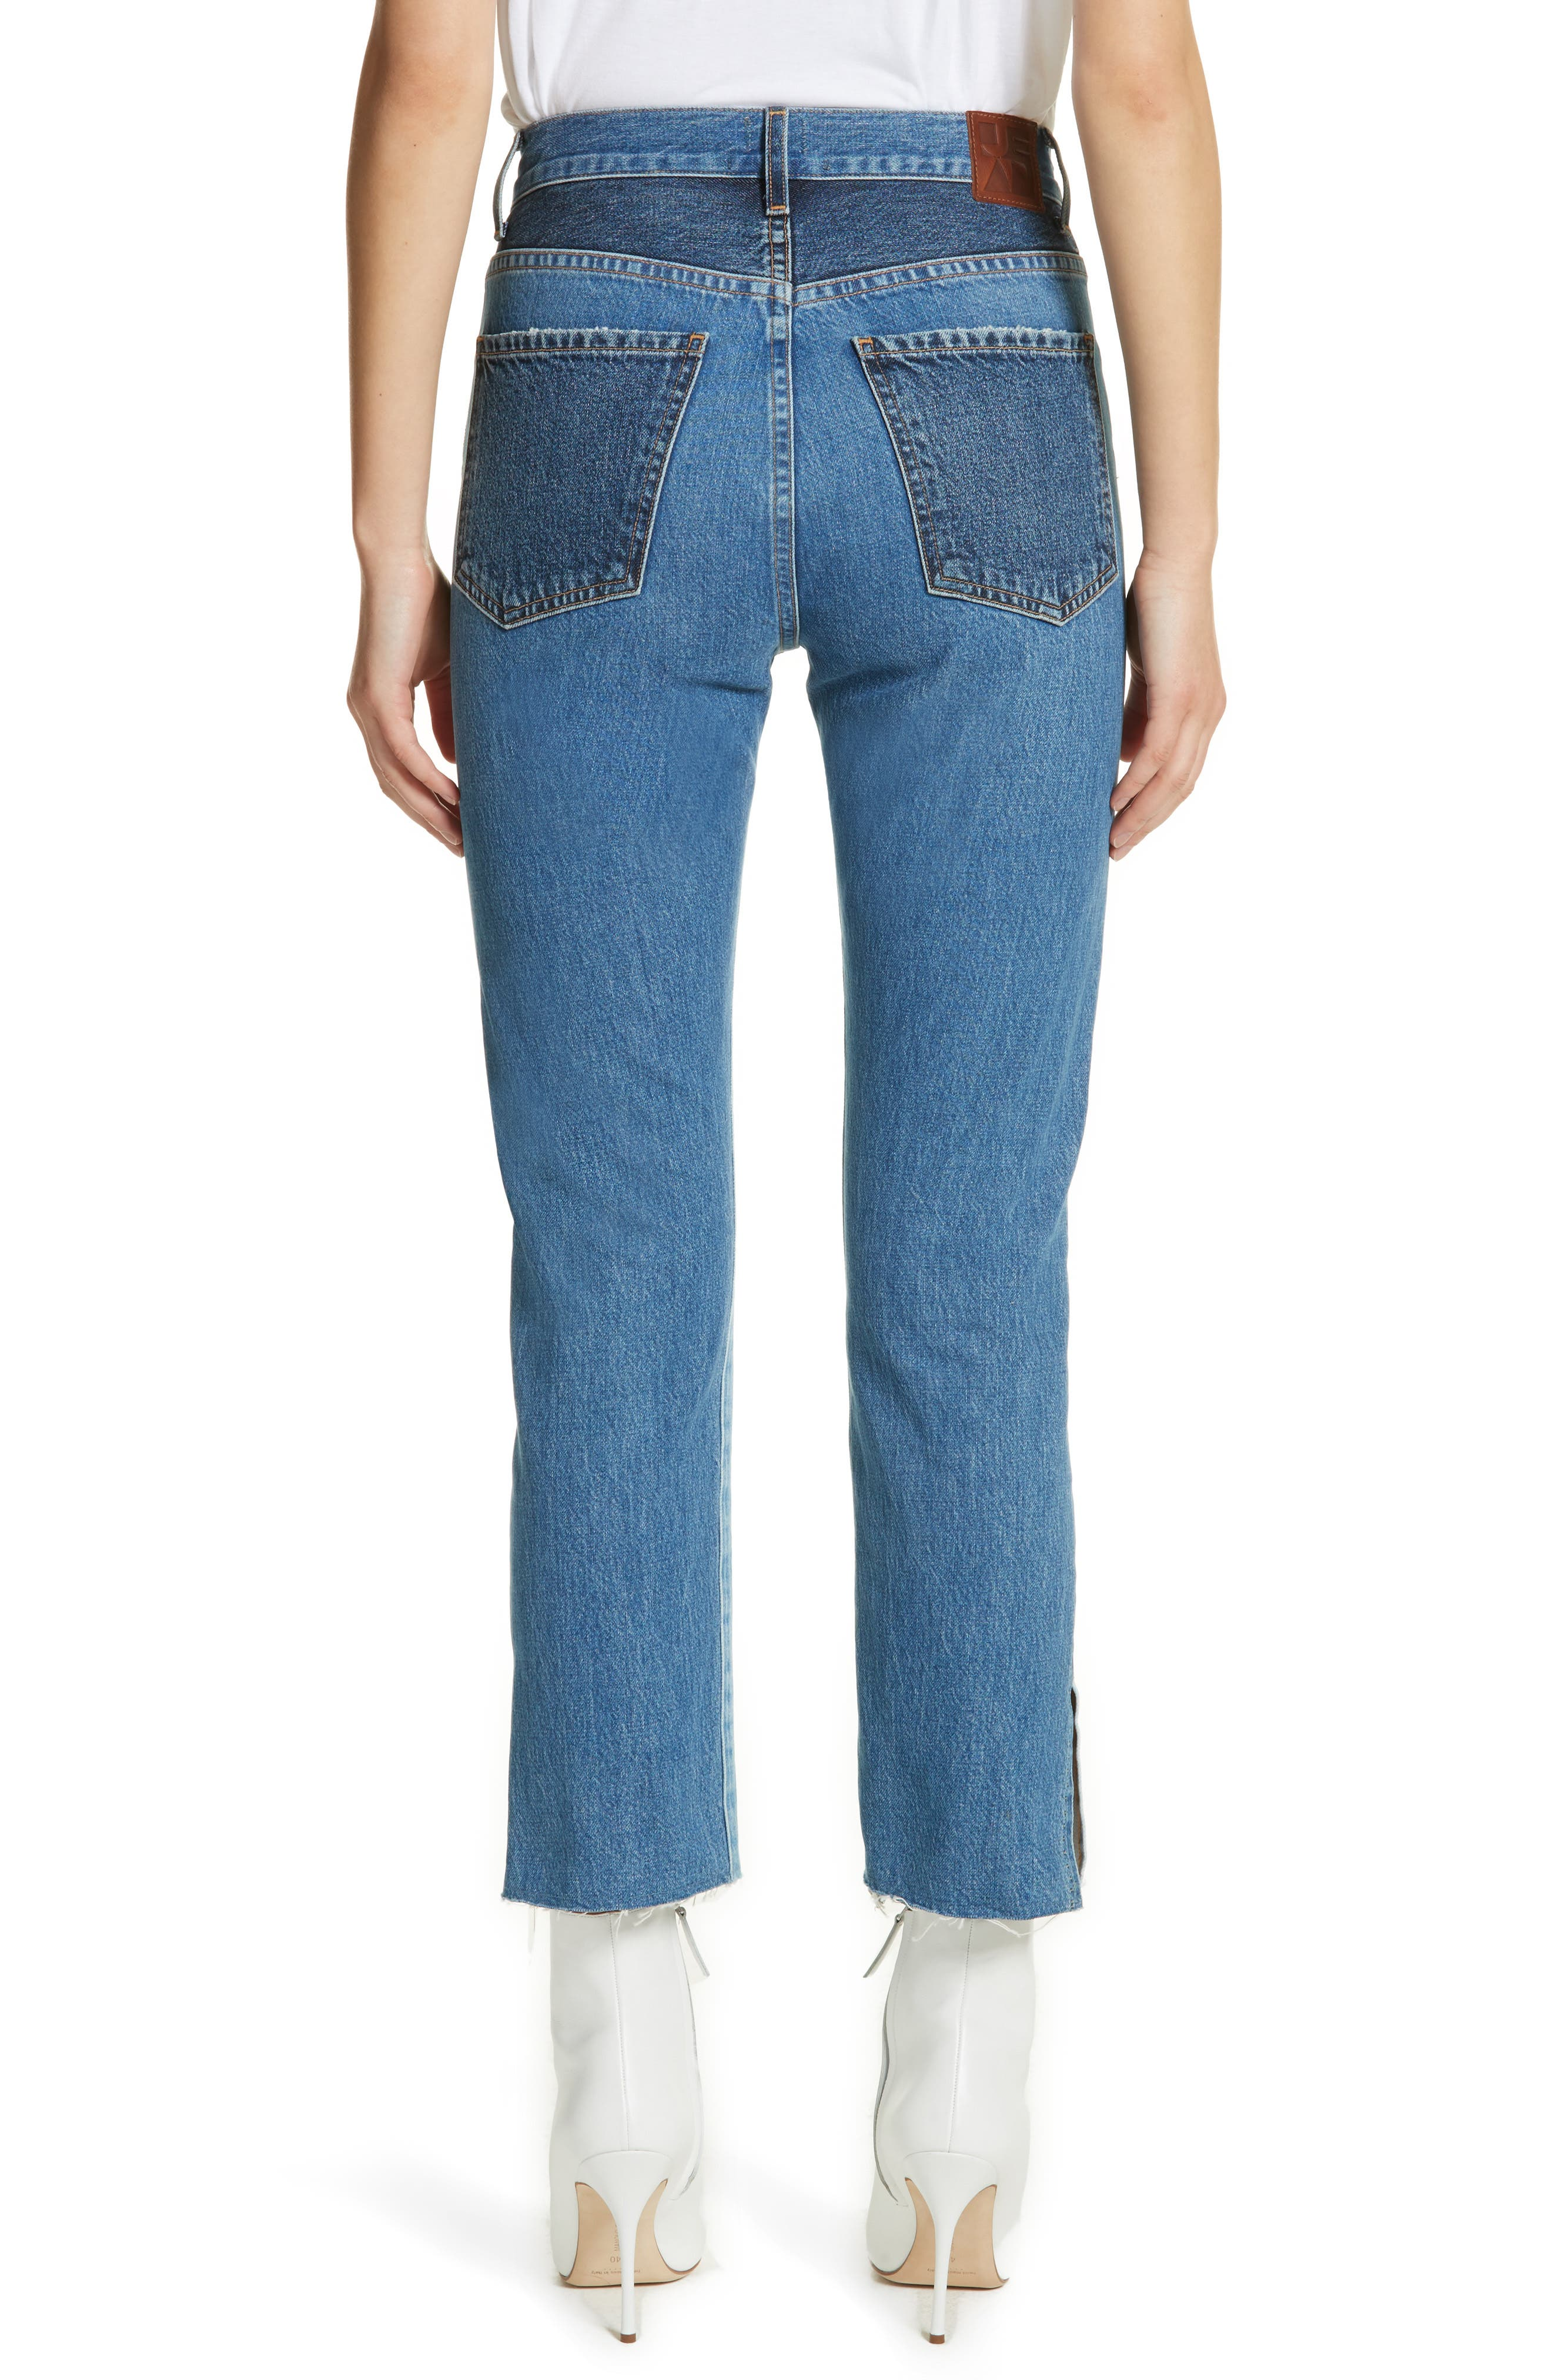 Hunter High Rise Straight Leg Crop Jeans,                             Alternate thumbnail 2, color,                             Jagger